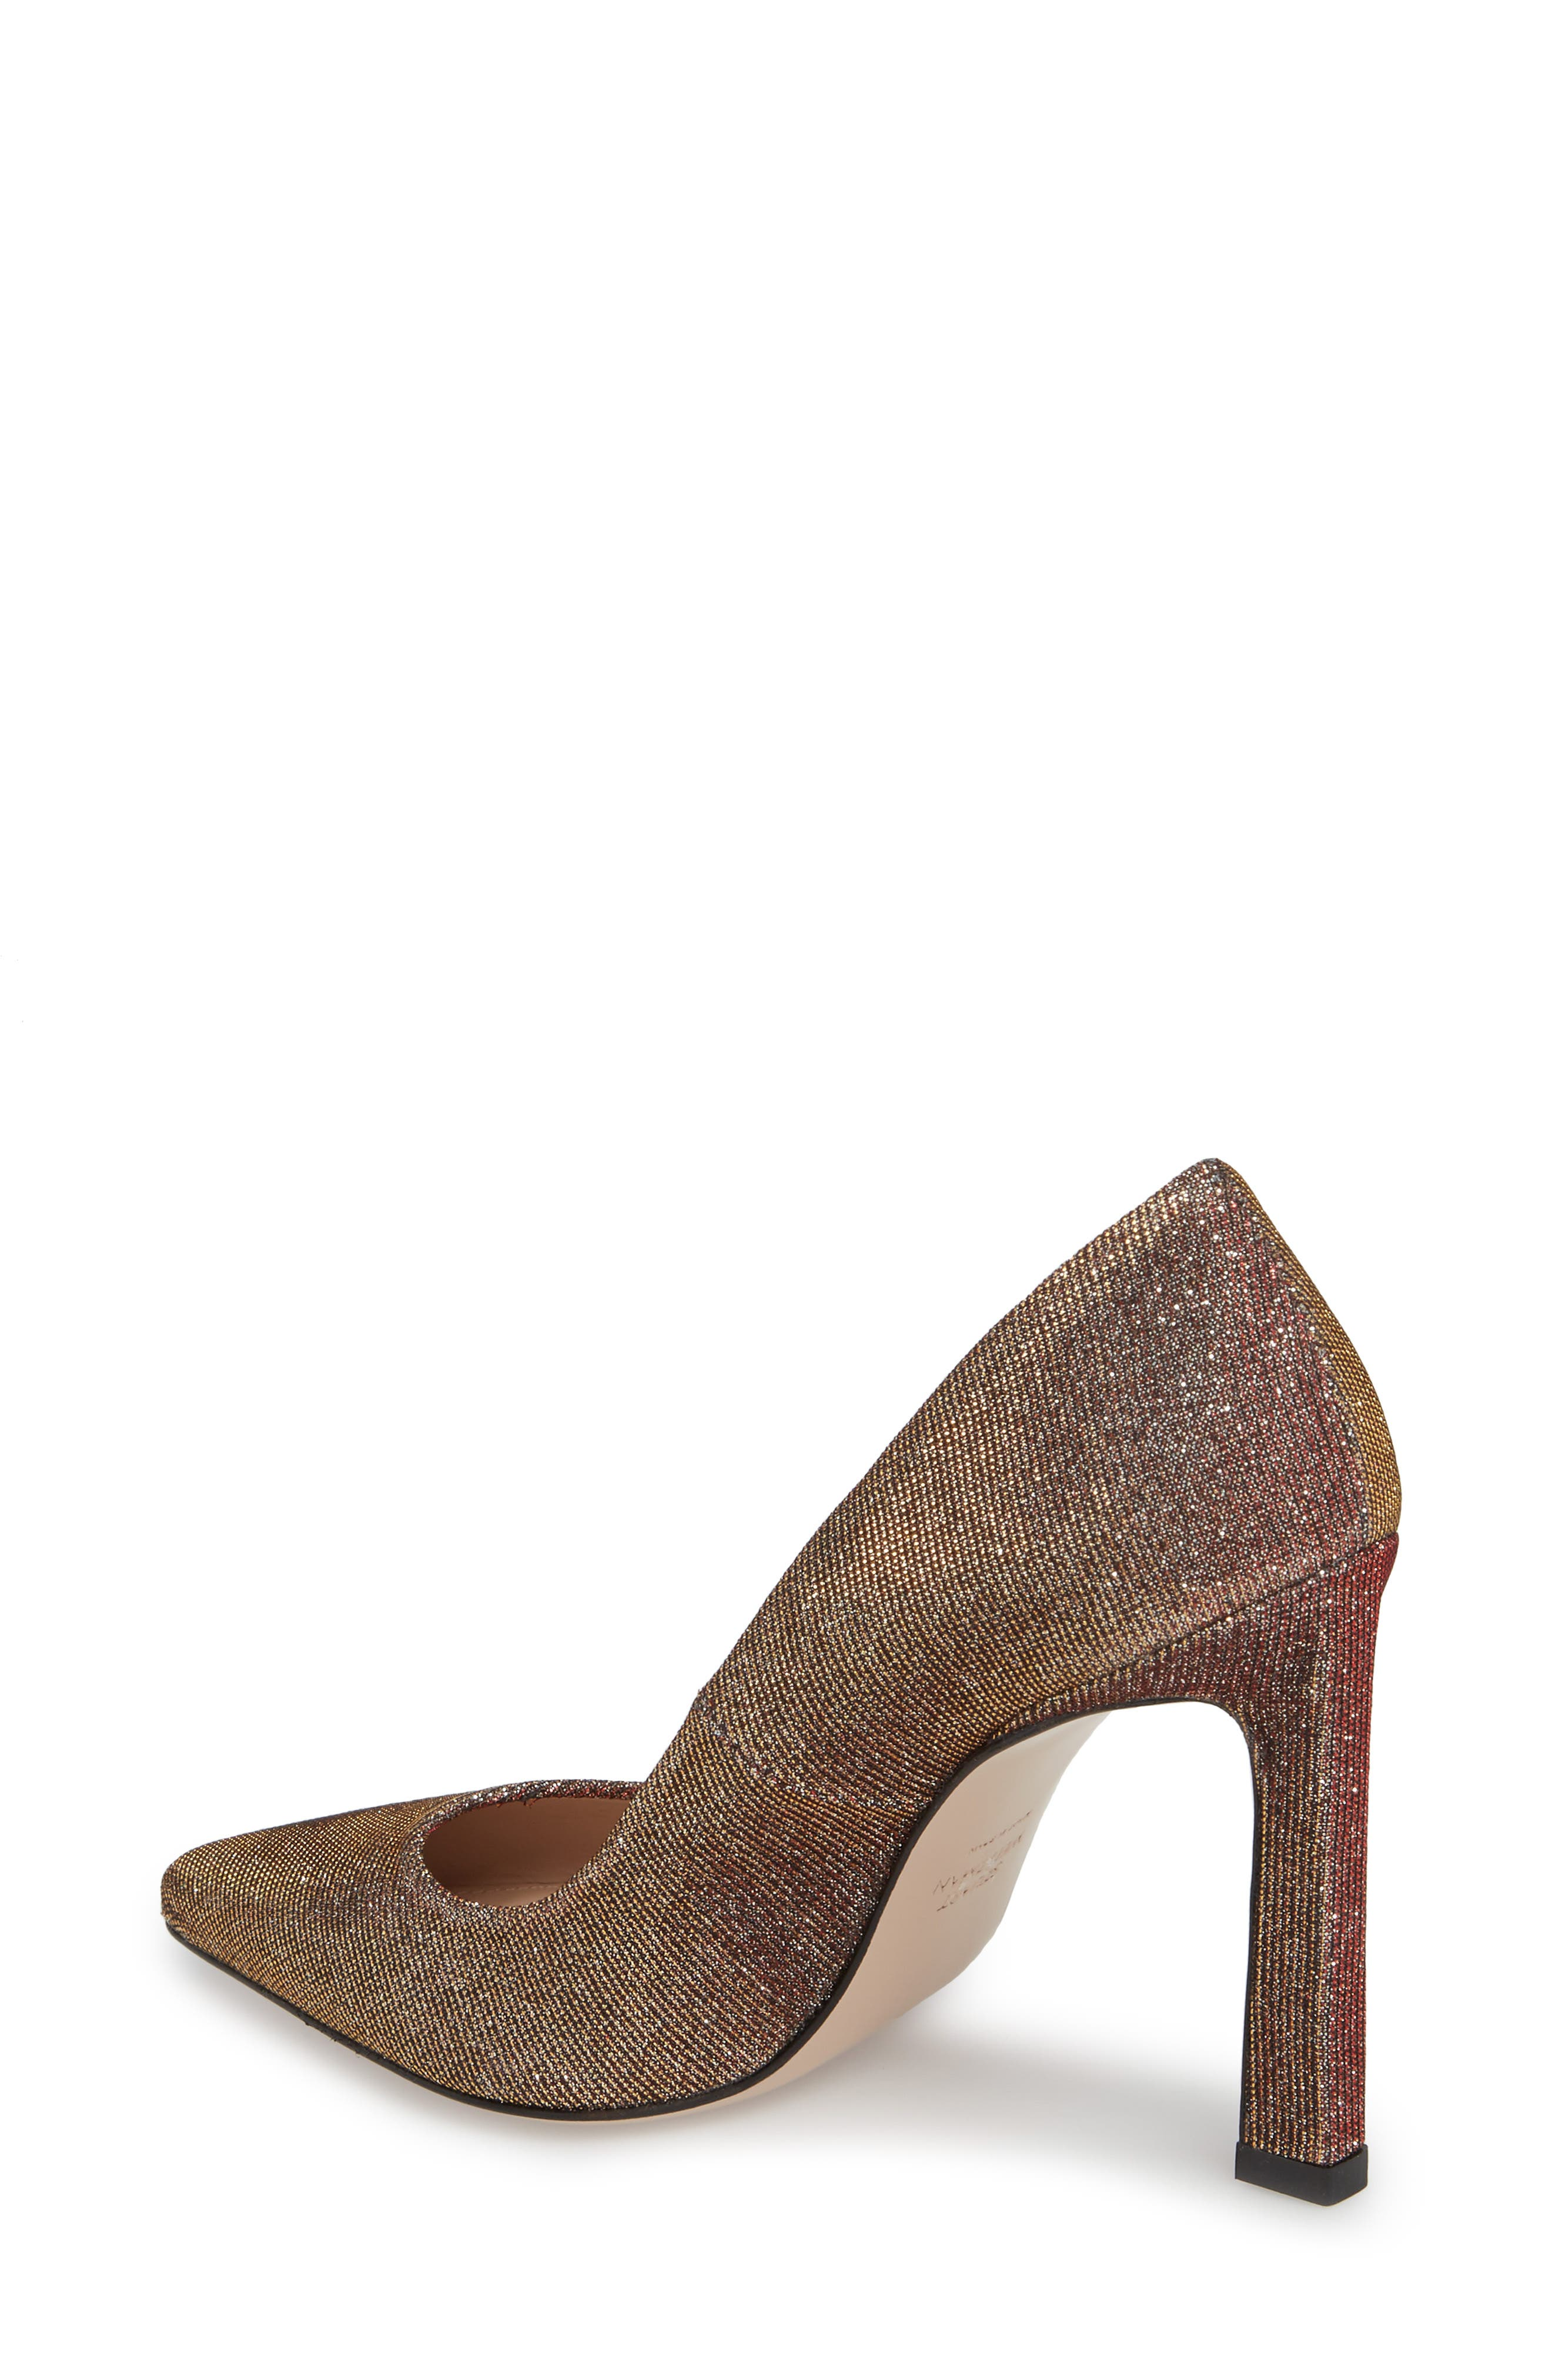 Chicster Pointy Toe Pump,                             Alternate thumbnail 2, color,                             240